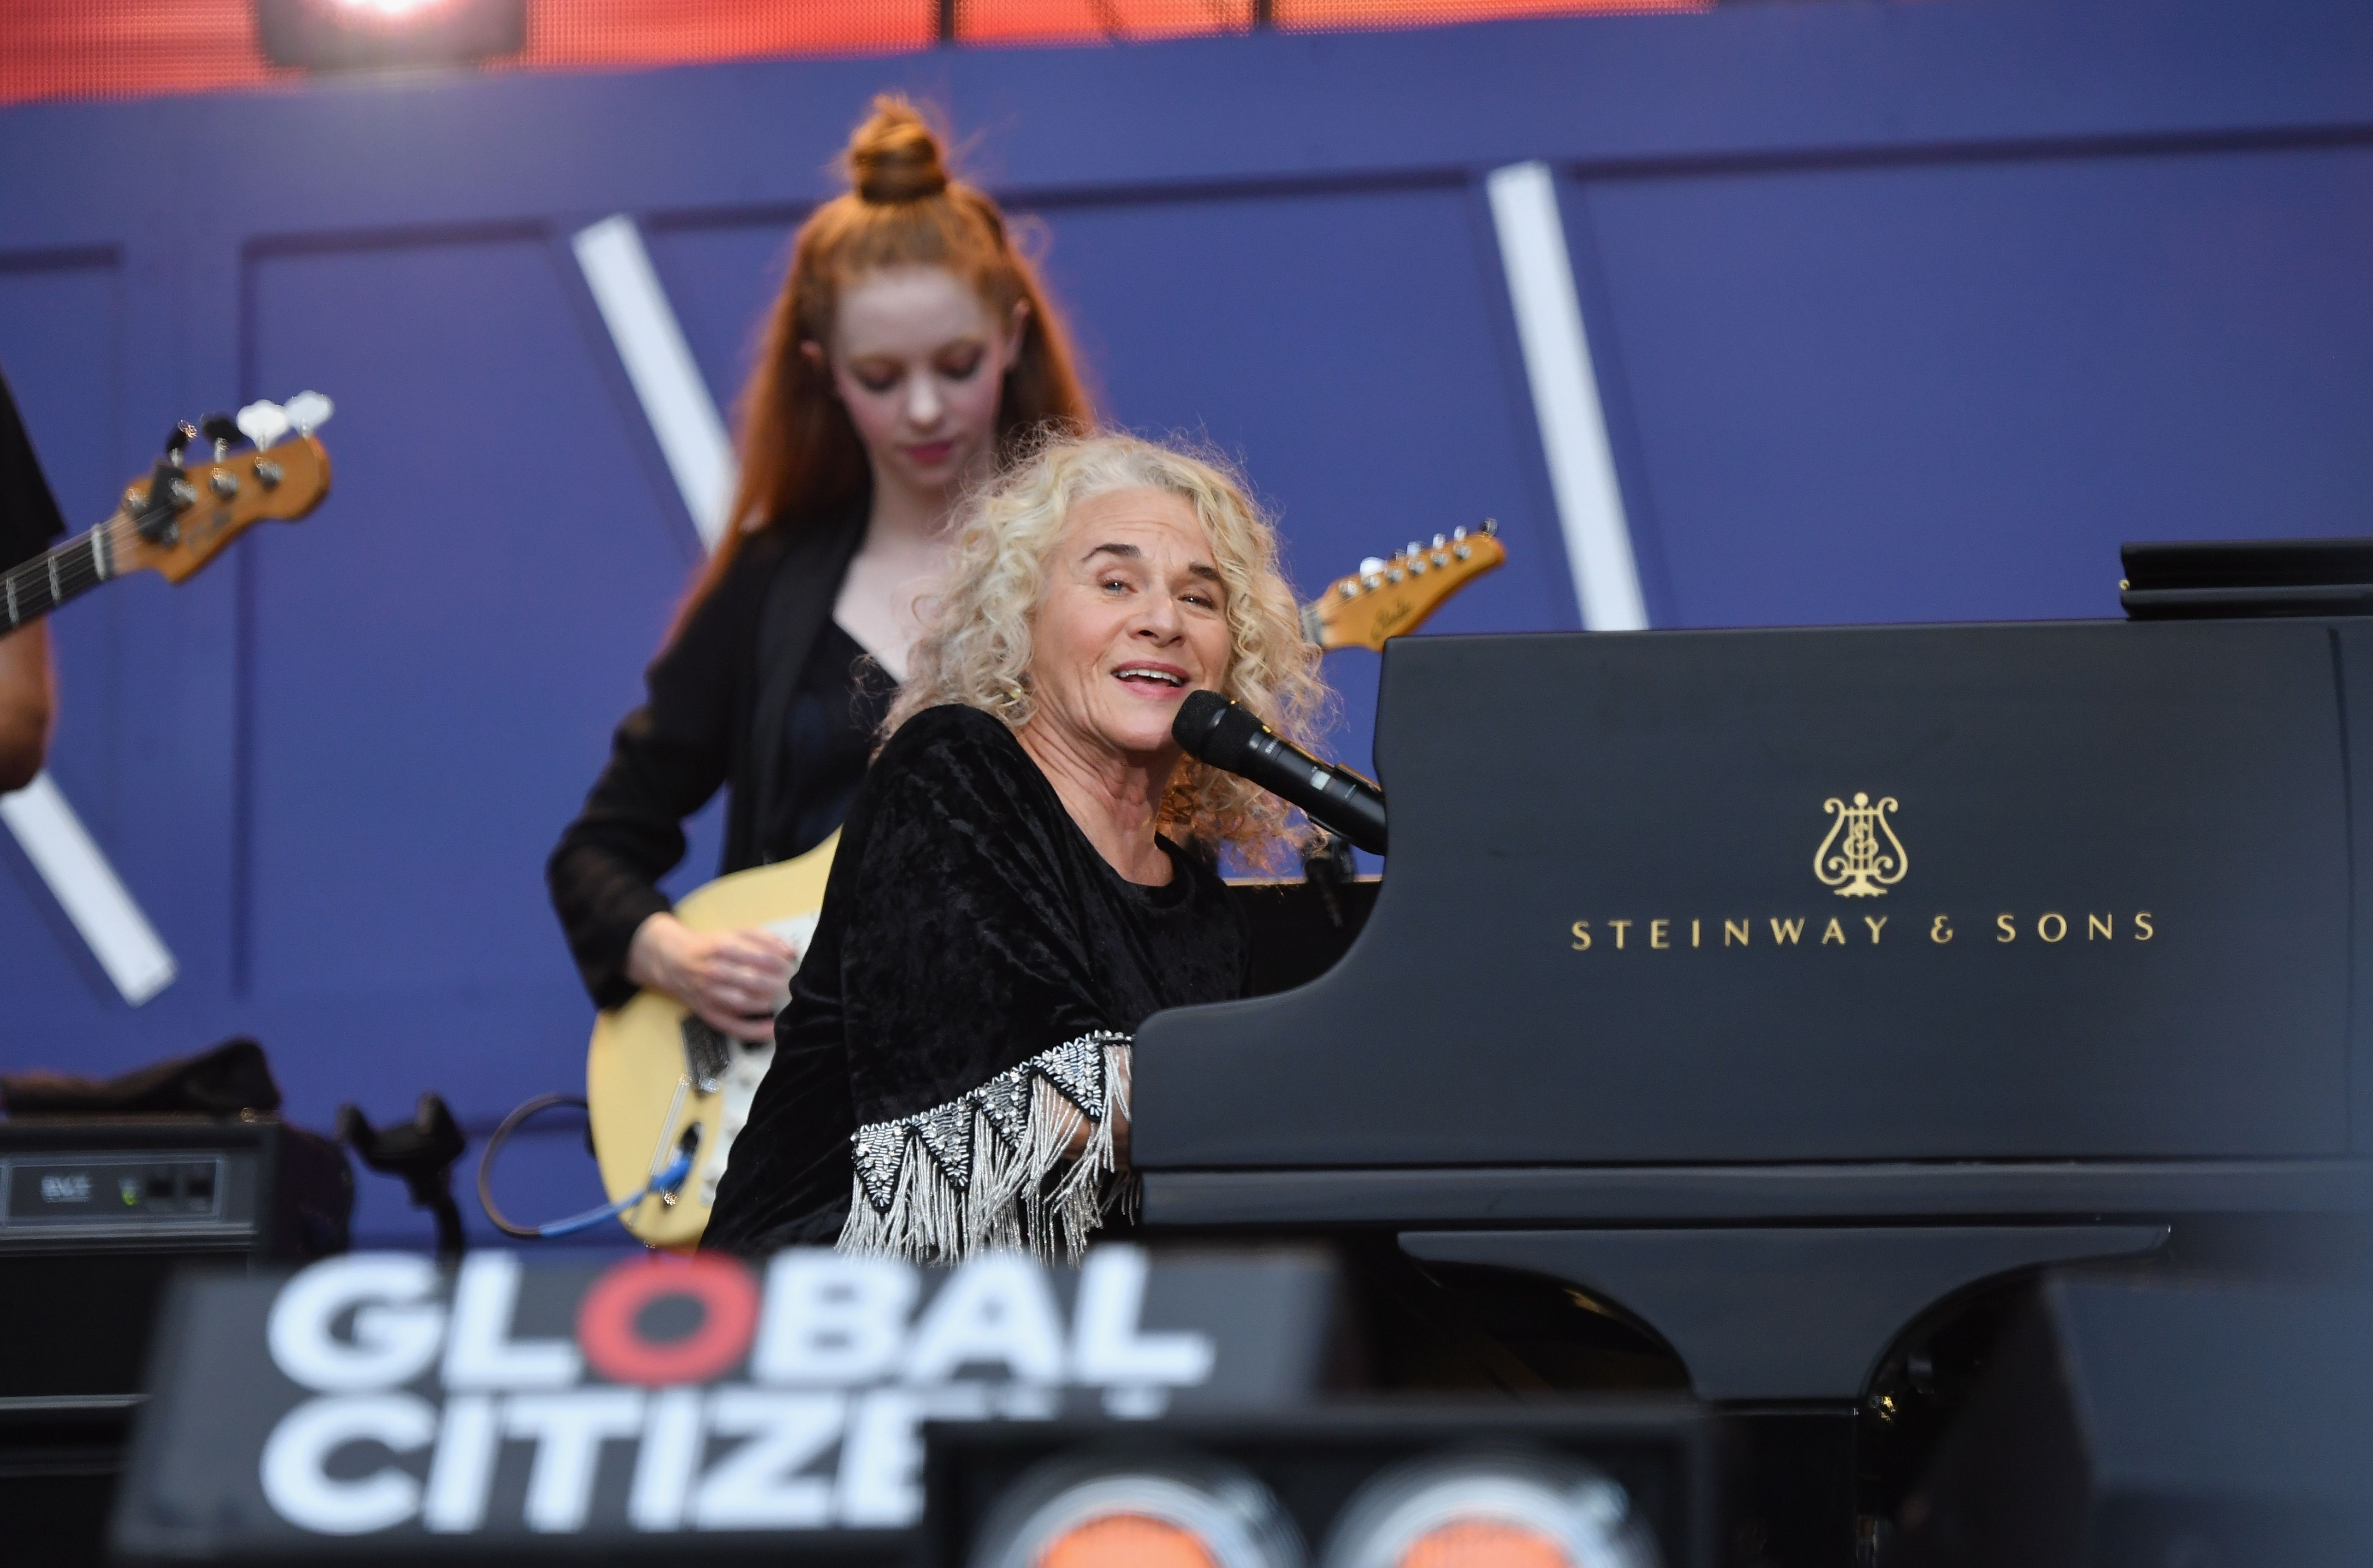 US singer Carole King performs onstage at the 2019 Global Citizen Festival: Power The Movement in Central Park in New York on September 28, 2019. (Photo by Angela Weiss / AFP)        (Photo credit should read ANGELA WEISS/AFP/Getty Images)